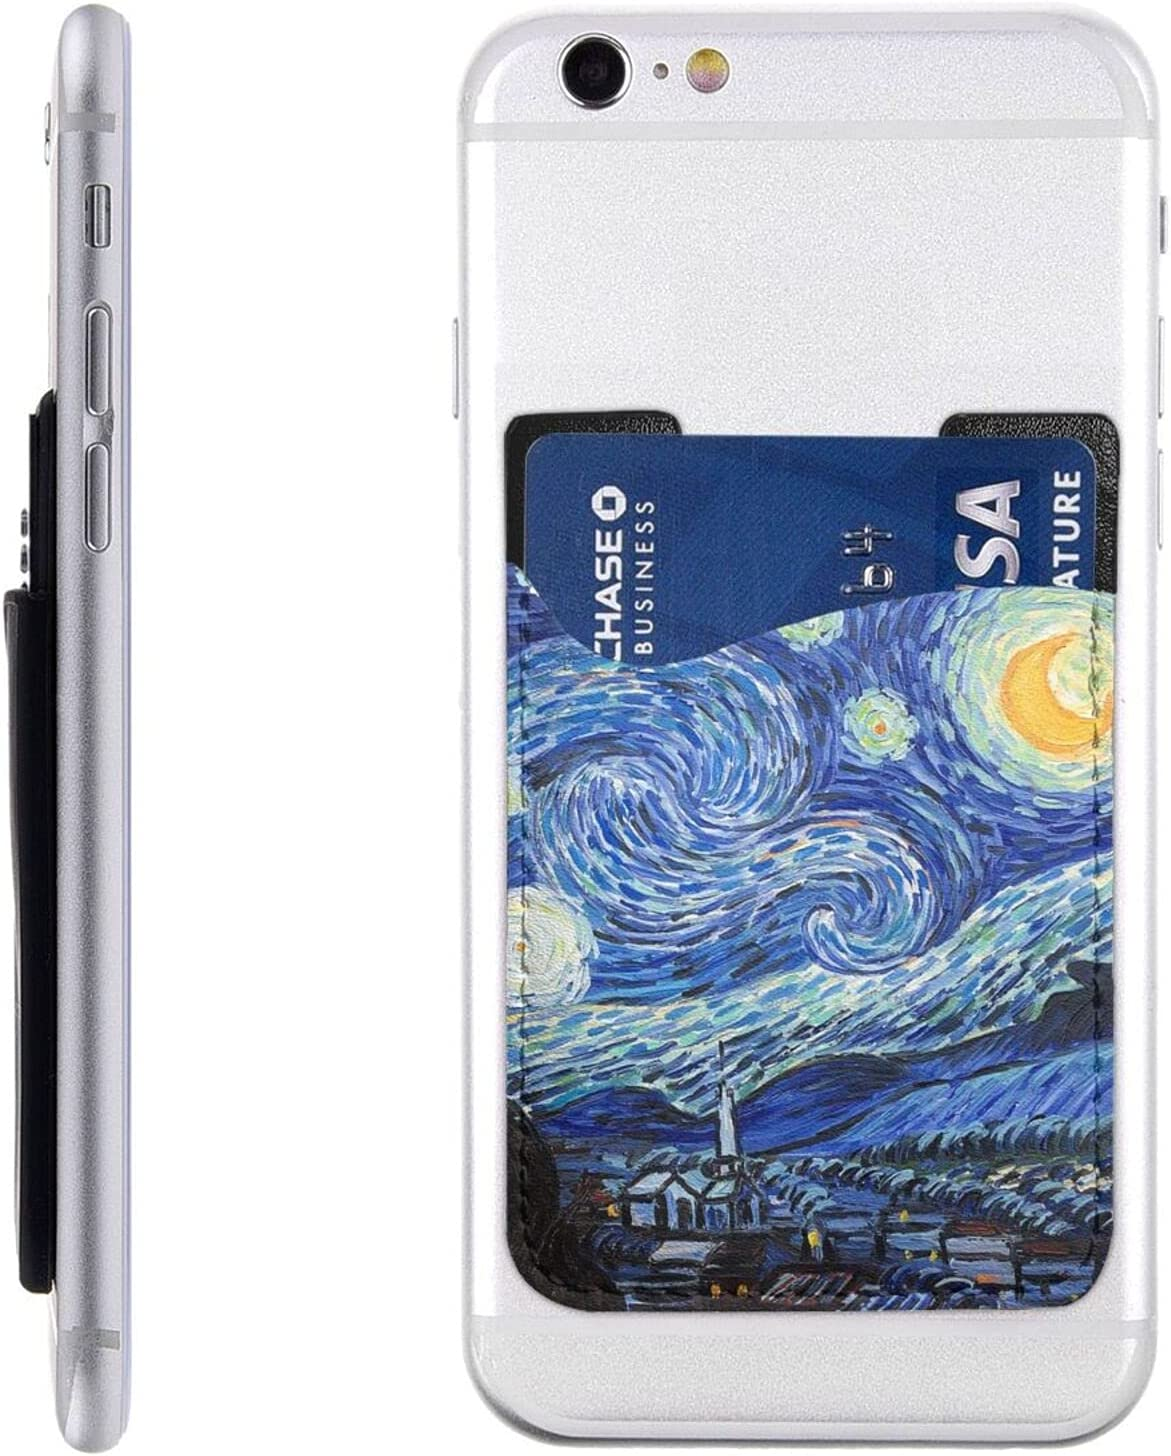 Starry Night Van Gogh Cell Phone Card Holder PU case Back Ultra Slim Adhesive Stick On Card Wallet Sticker for iPhone Android